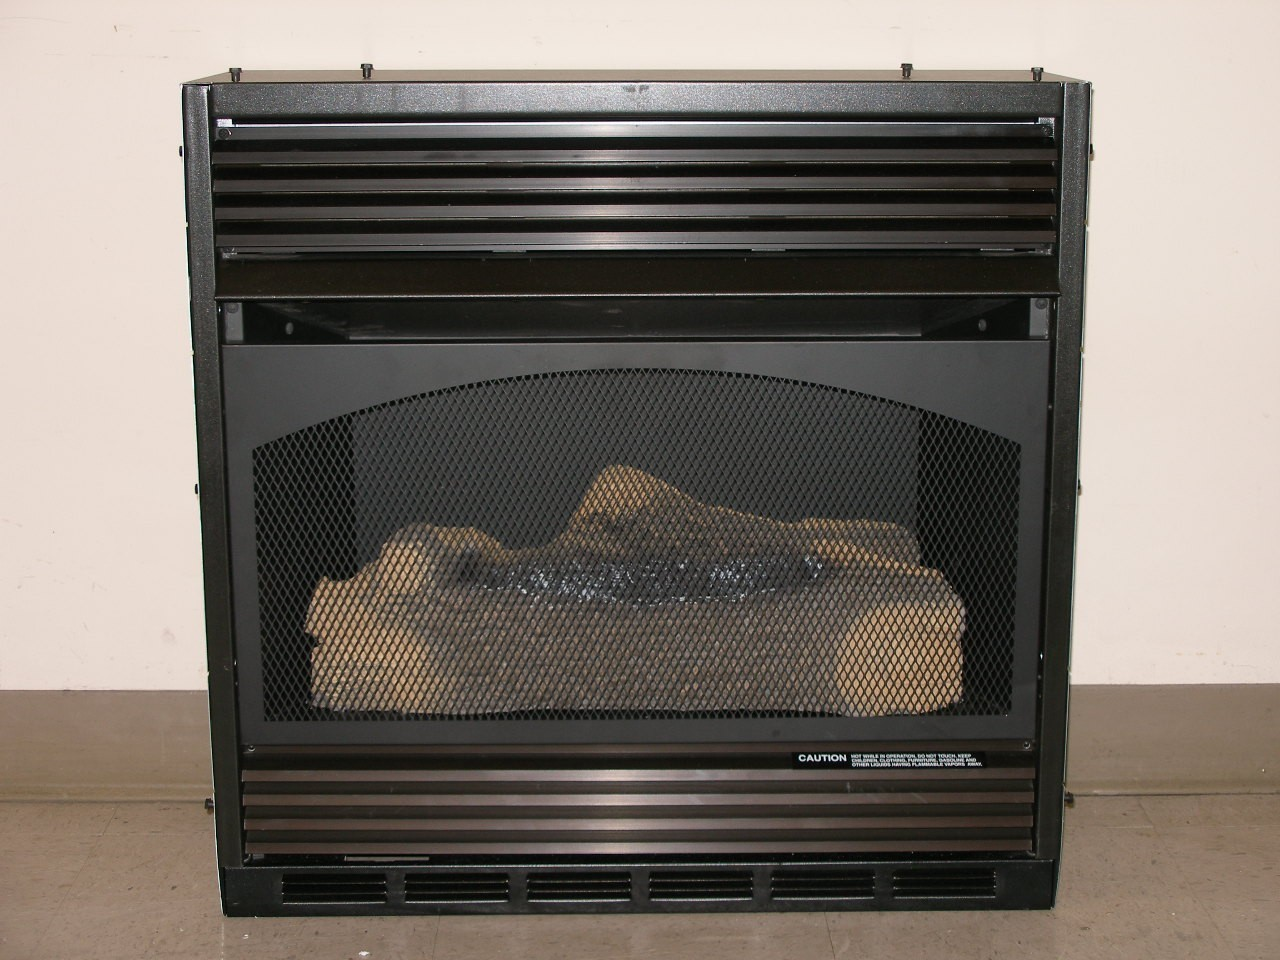 DESA Heating Products Announce Recall of Compact Gas Fireplaces | CPSC.gov